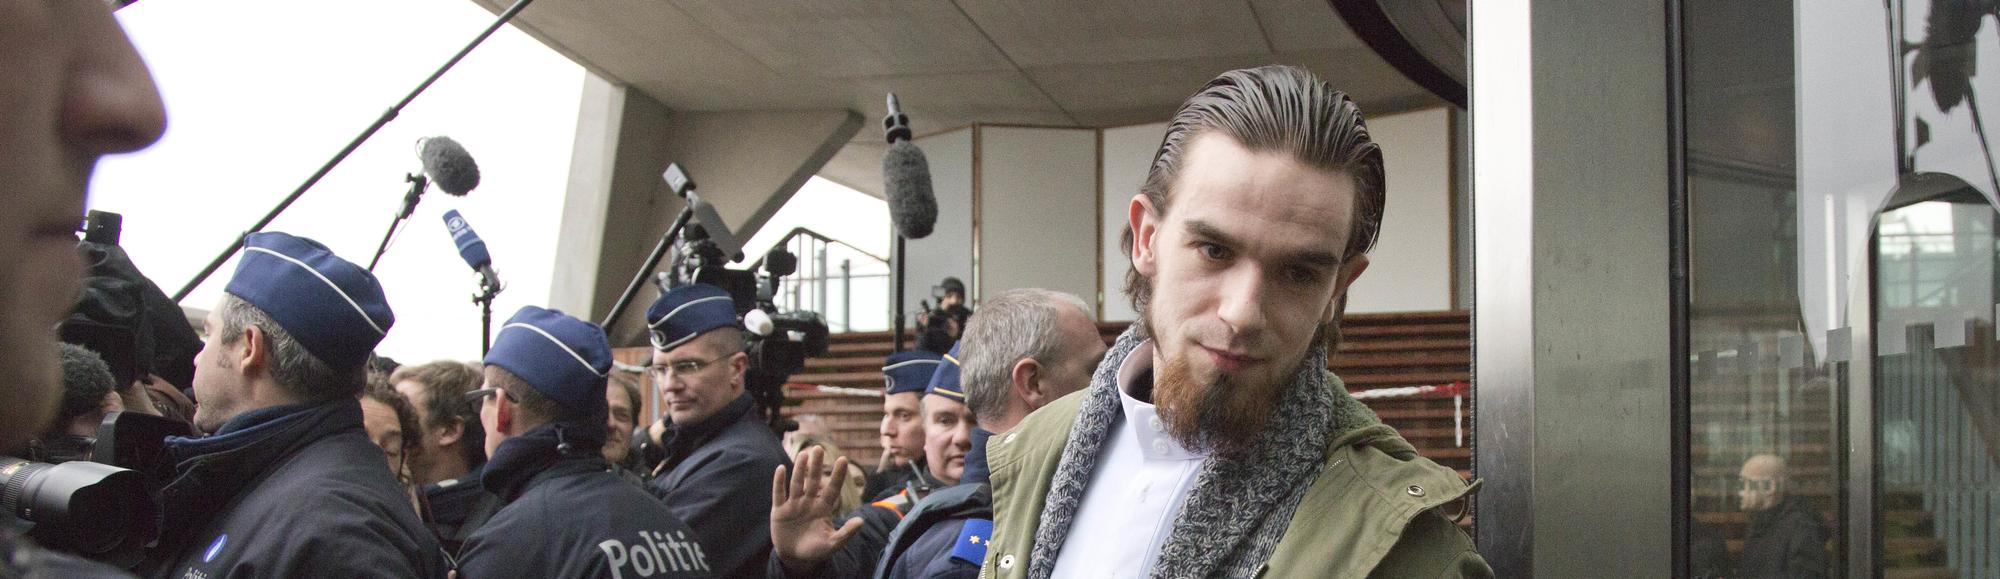 'Sharia4Belgium' Leader and Dozens of Other Militants Are Sentenced to Jail Time